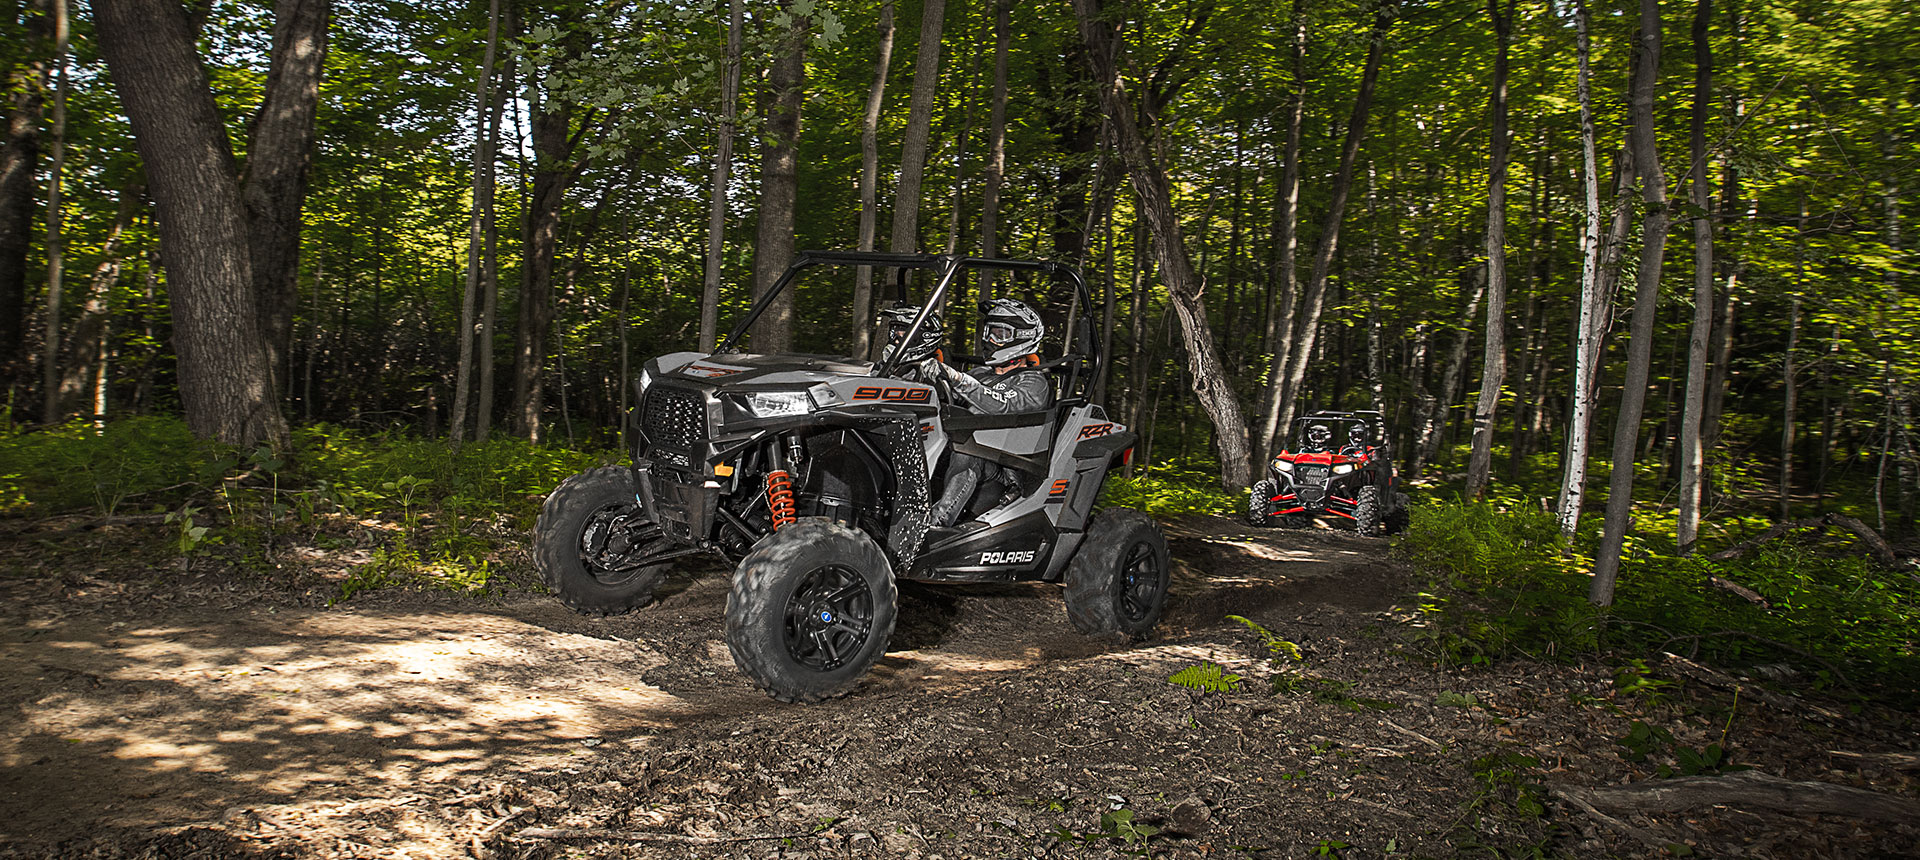 2019 Polaris RZR S 900 in Thornville, Ohio - Photo 8